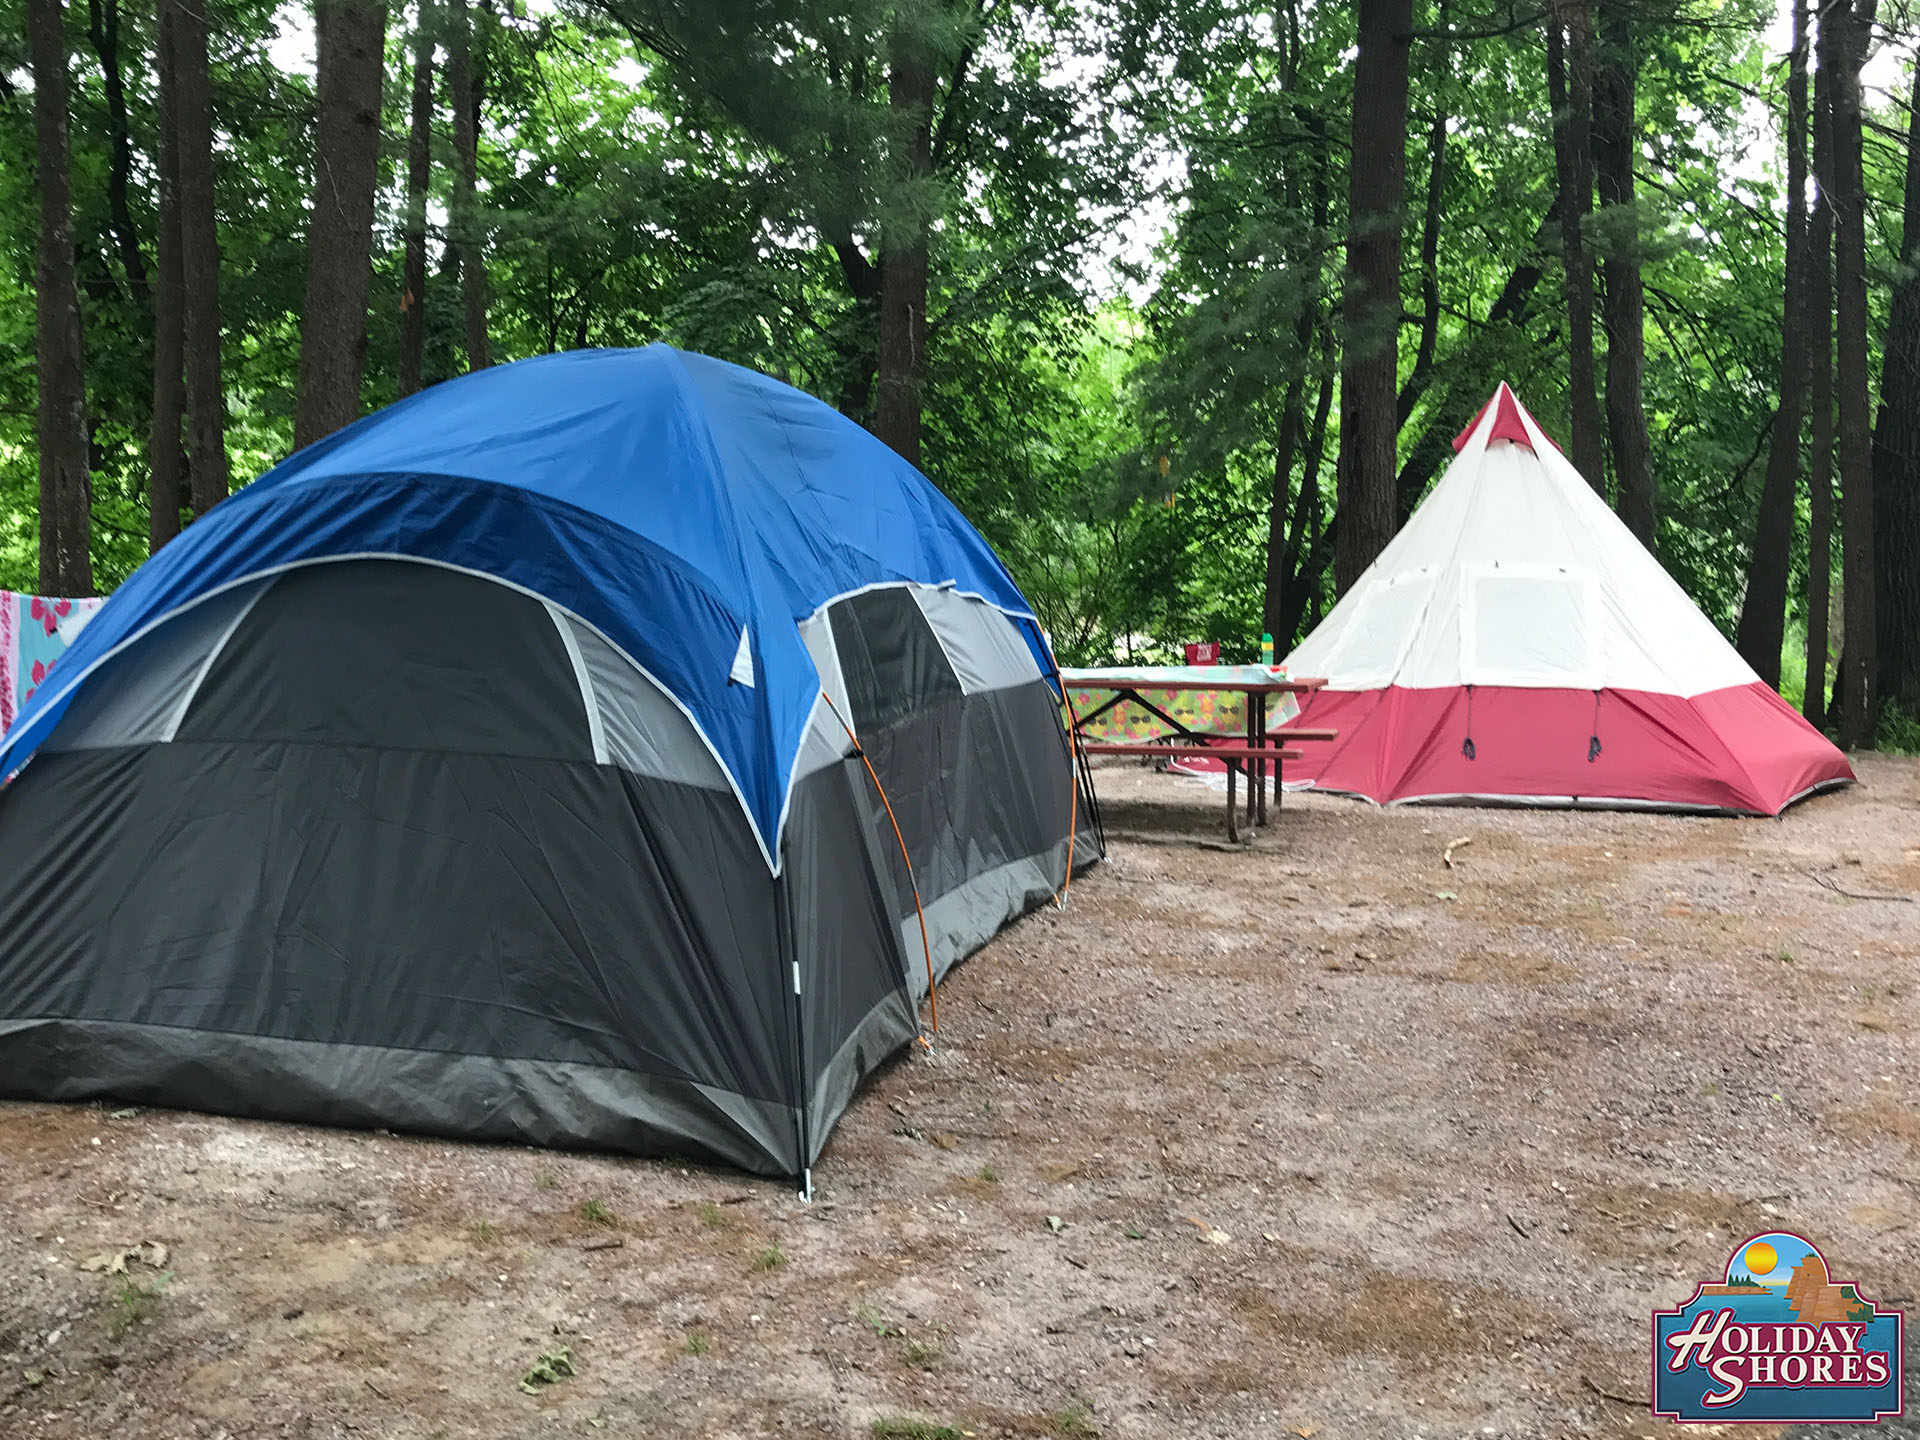 Holiday Shores Tent Tee Pee Site